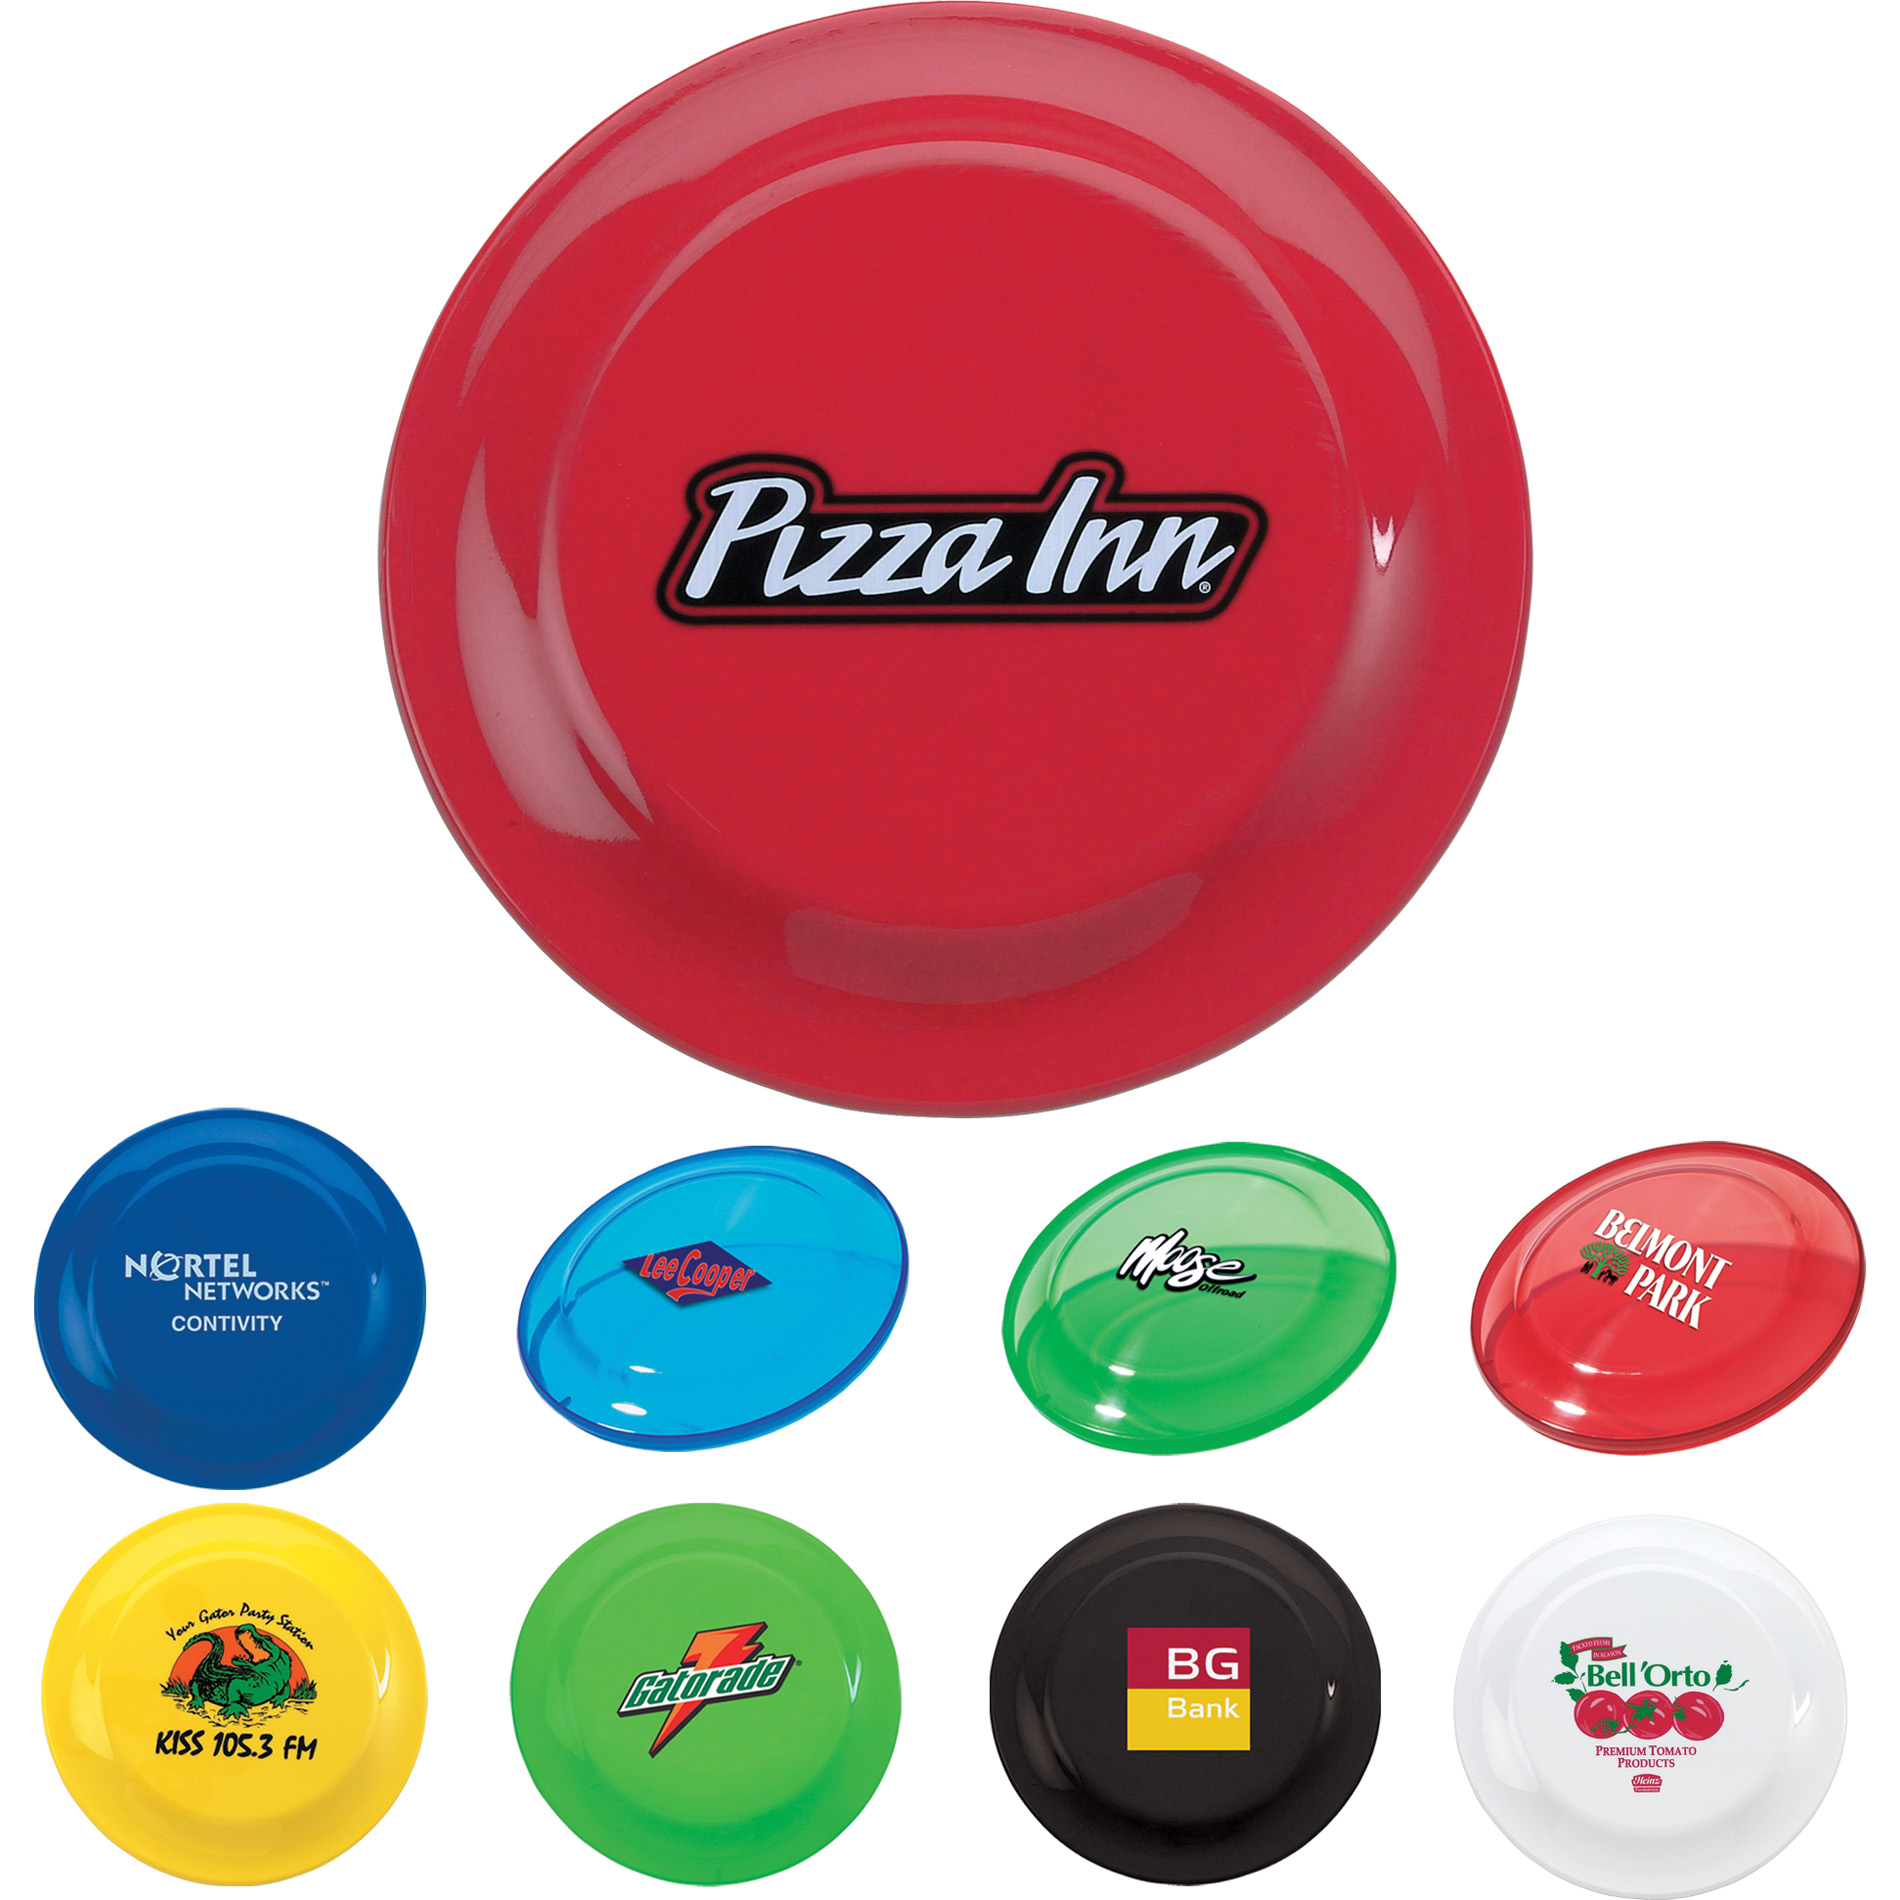 Custom Products Under $1 Cheap Promotional Items